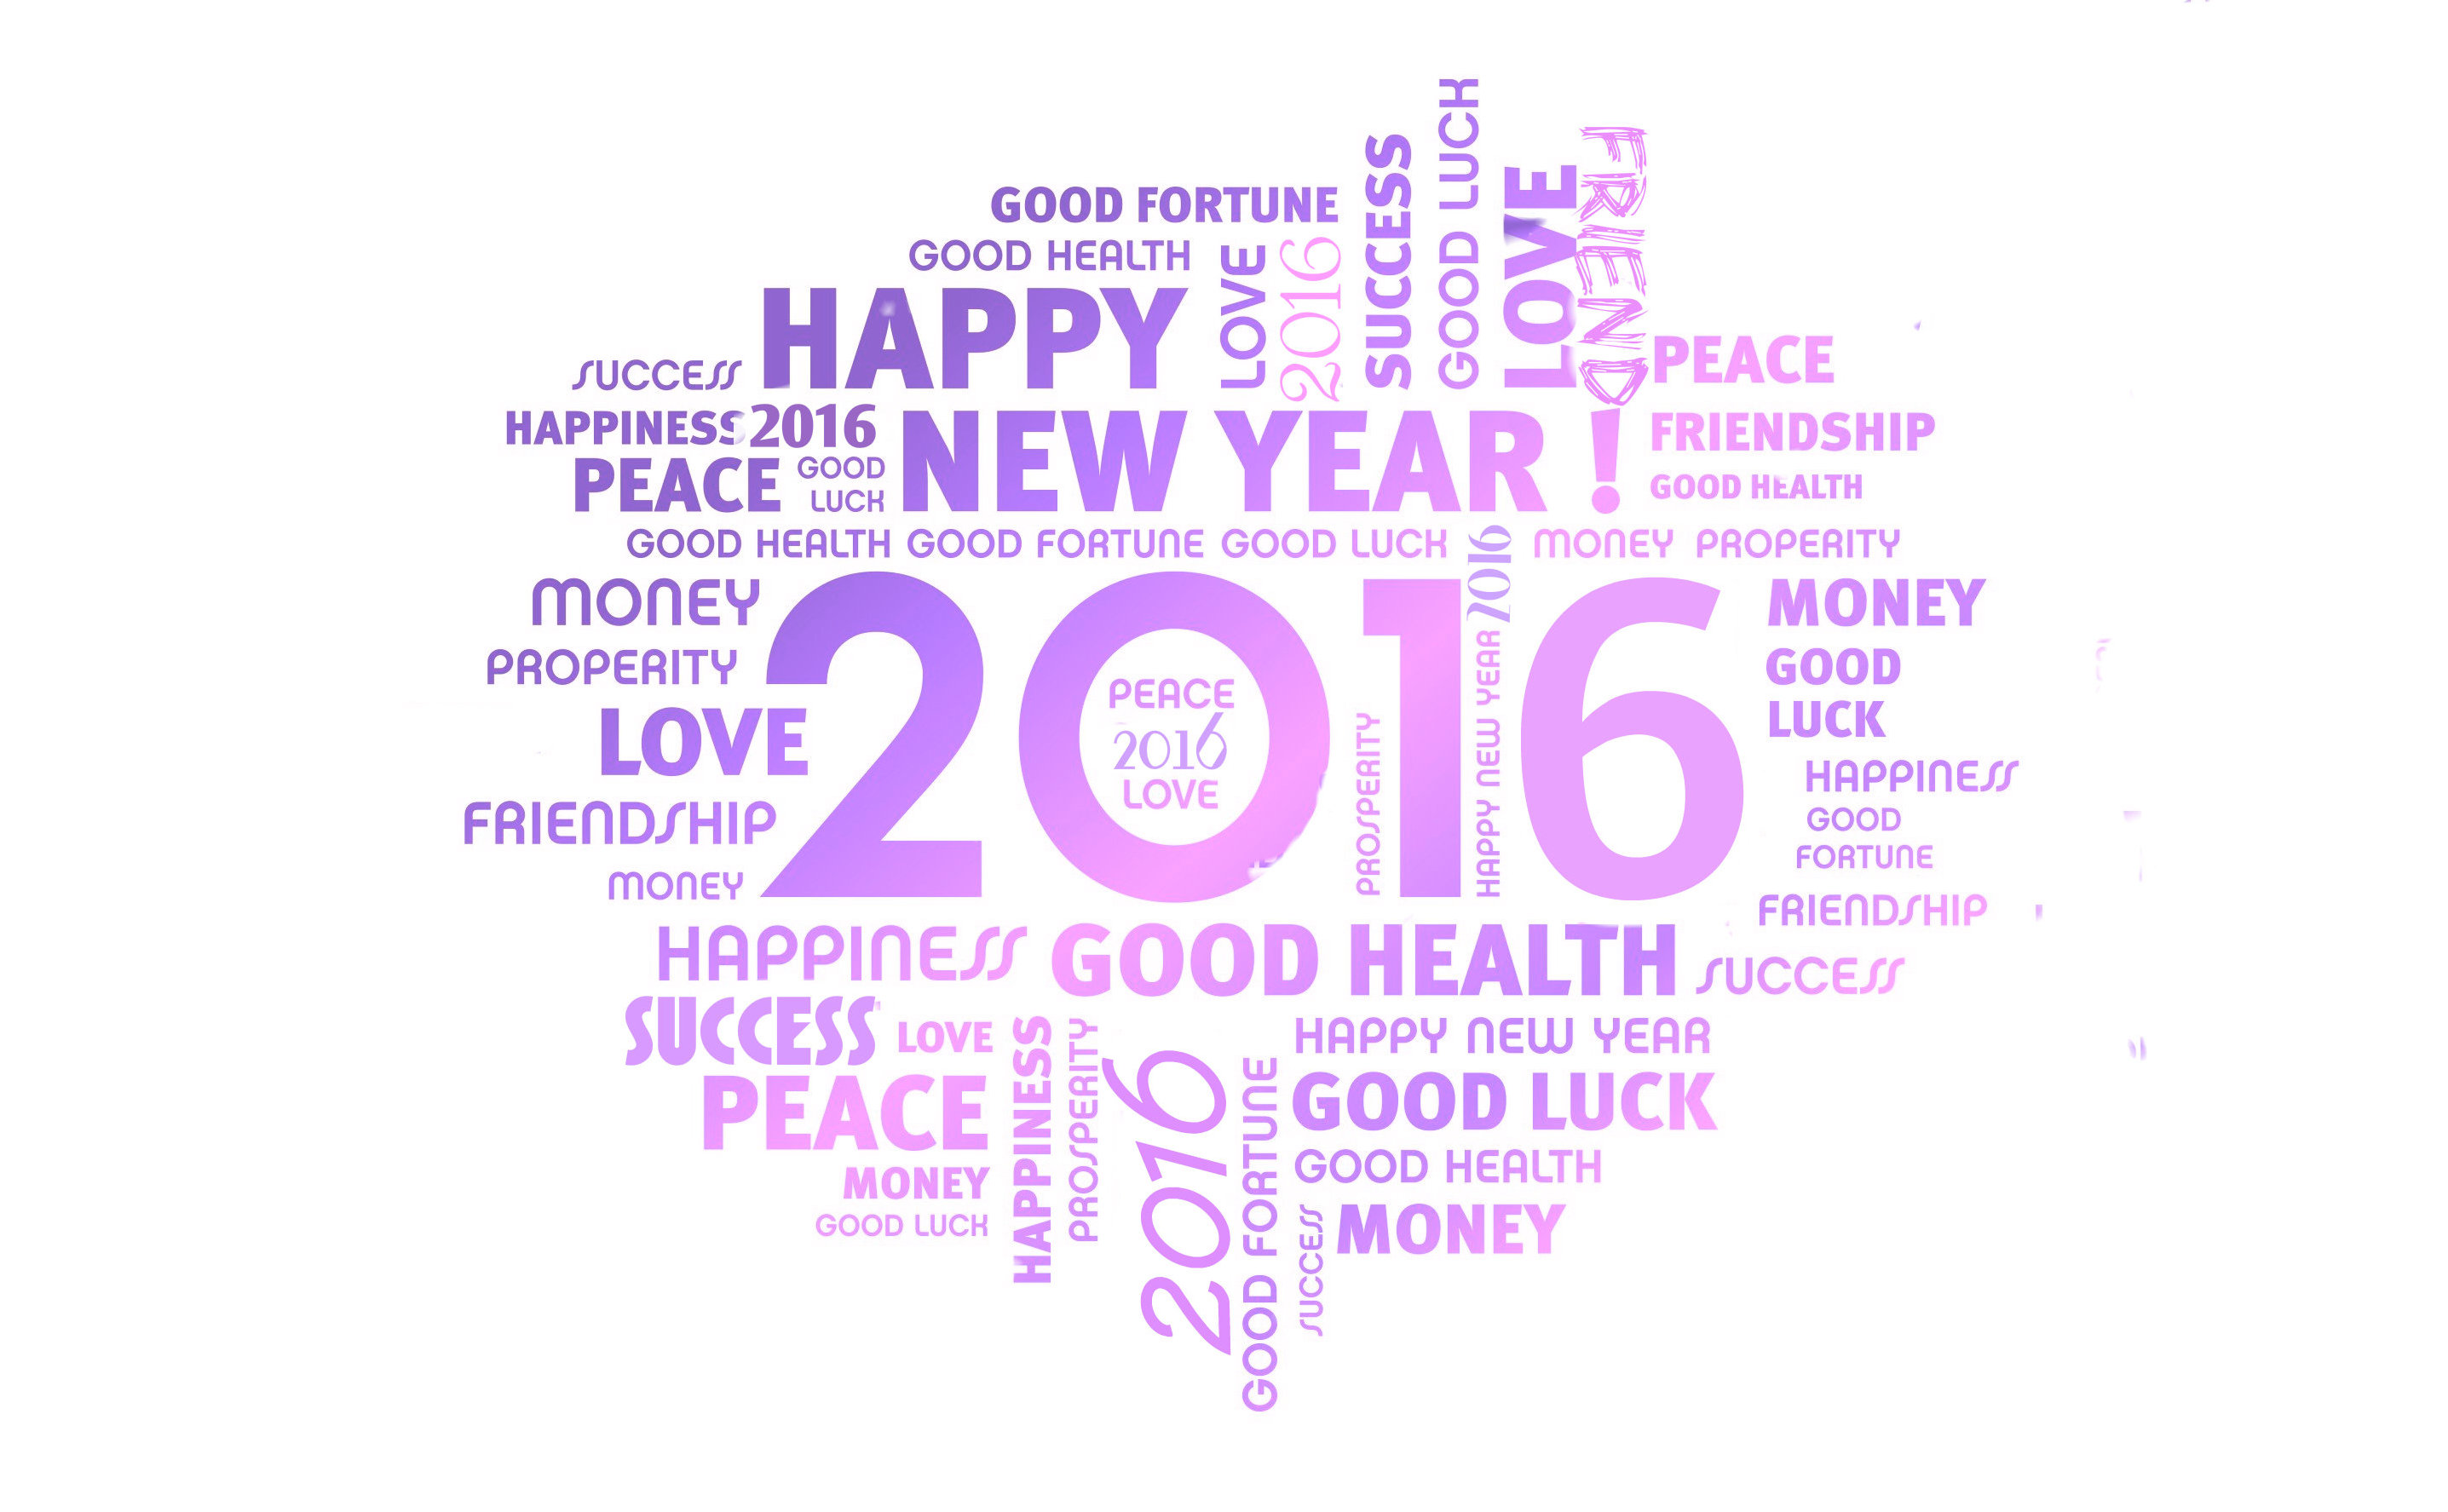 New Year 2016 HD Wallpaper Background Image